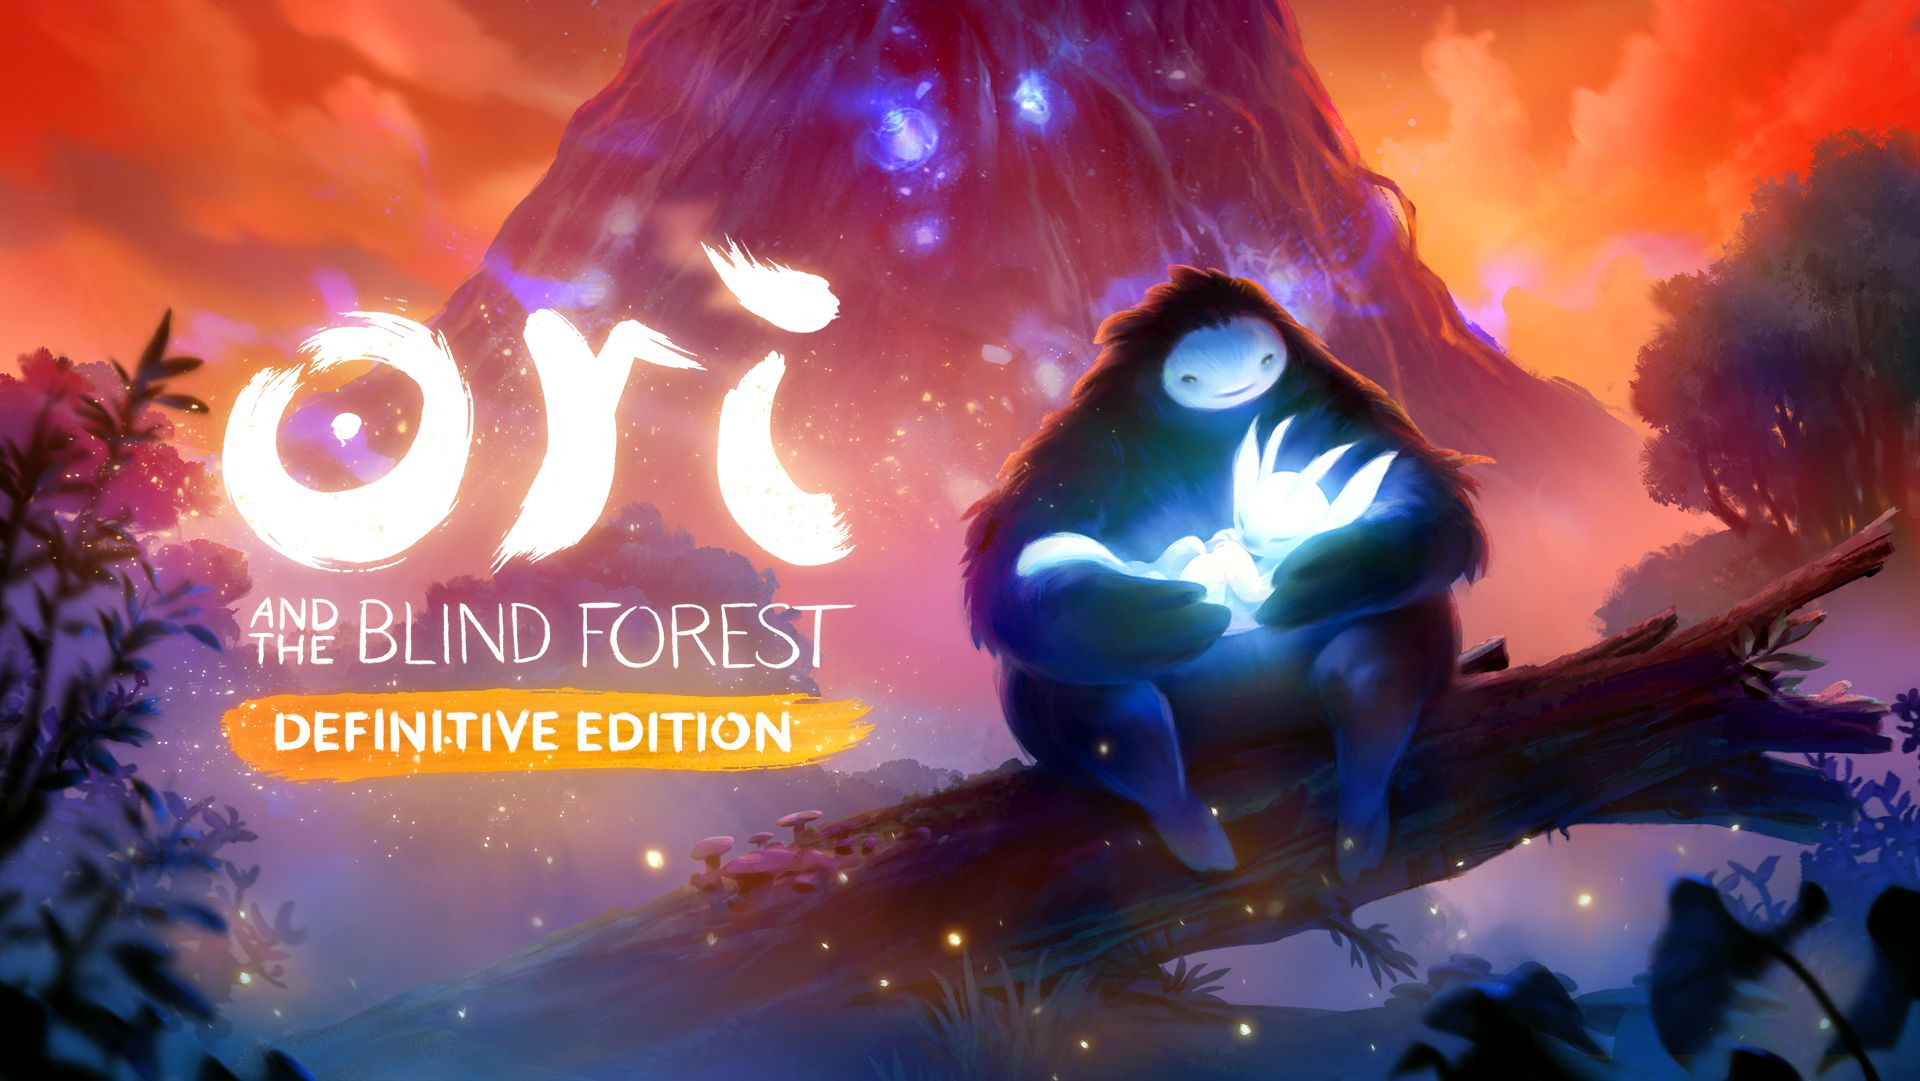 Microsoft miễn phí game siêu đẹp Ori and the Blind Forest